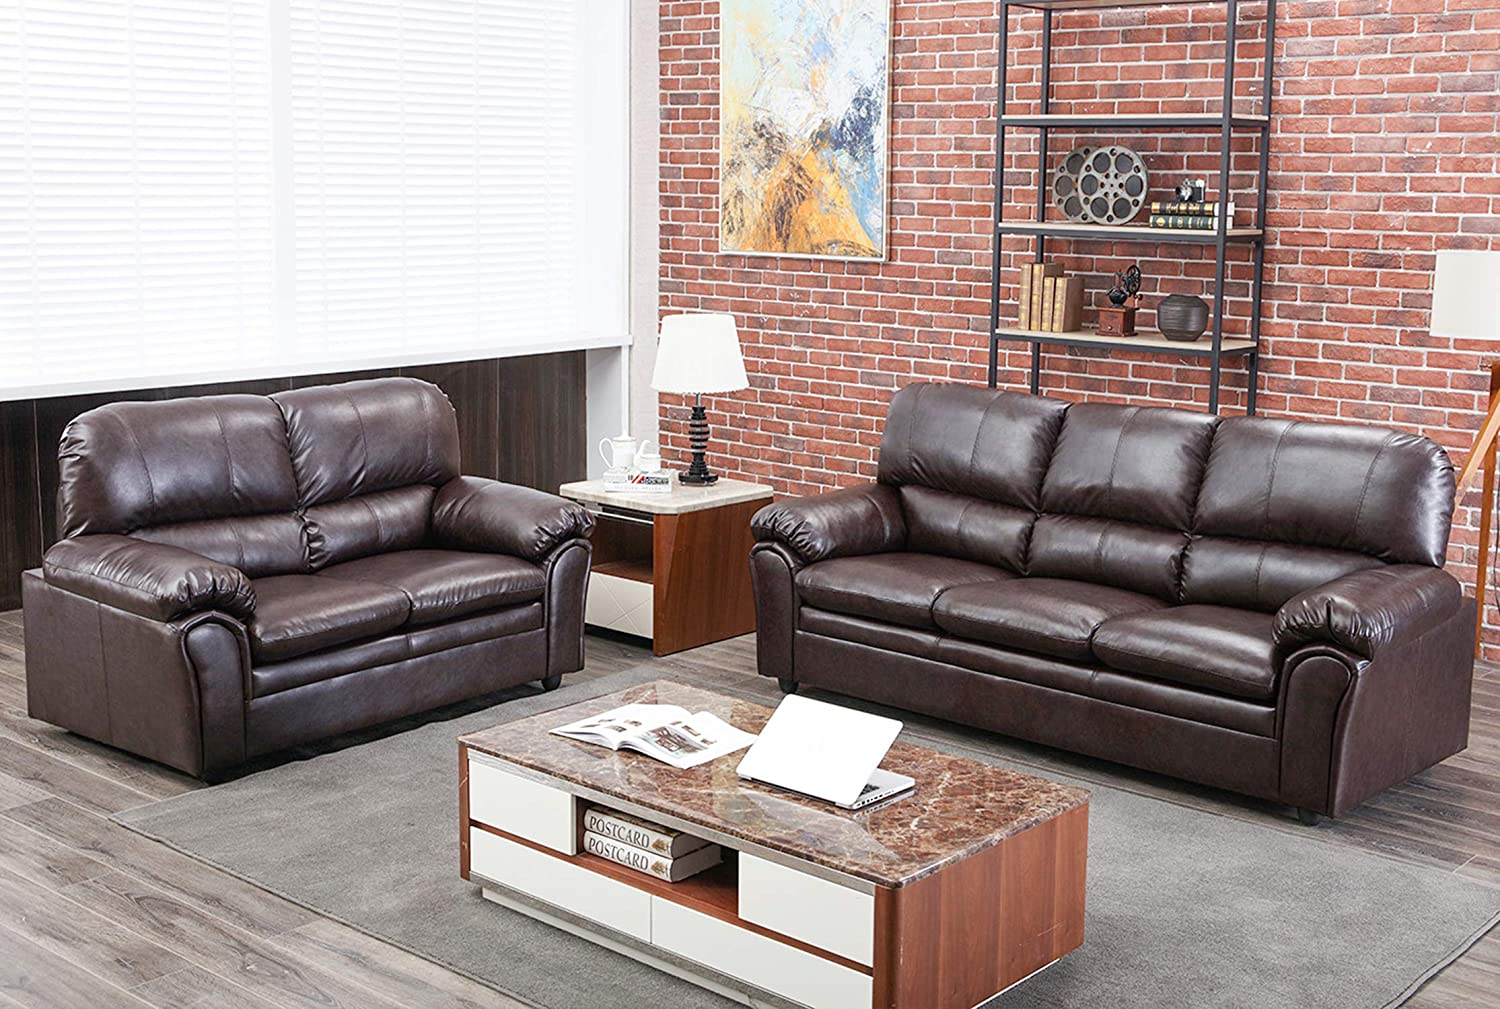 Sofa Sectional Sofa for Living Room Couches and Sofas Loveseat Modern Sofa Mid Century for Home Furniture (Sectional)